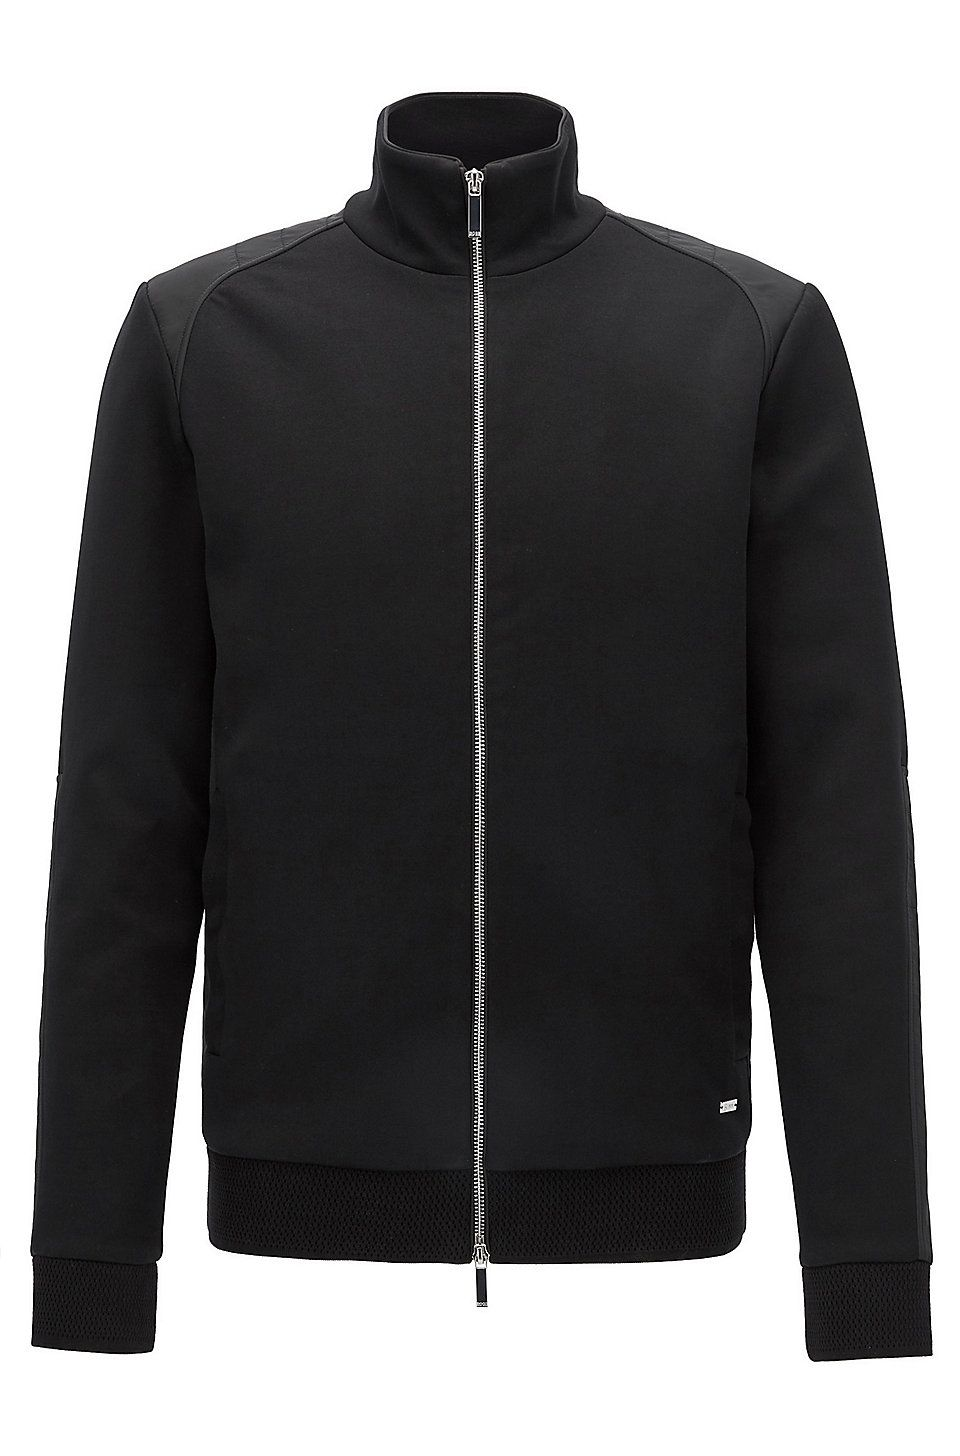 9ecbc502 Mercedes-Benz cotton-blend zip-through sweater - Black Sweaters and  Cardigans from BOSS for Men for £319.00 in the official HUGO BOSS Online  Store free ...